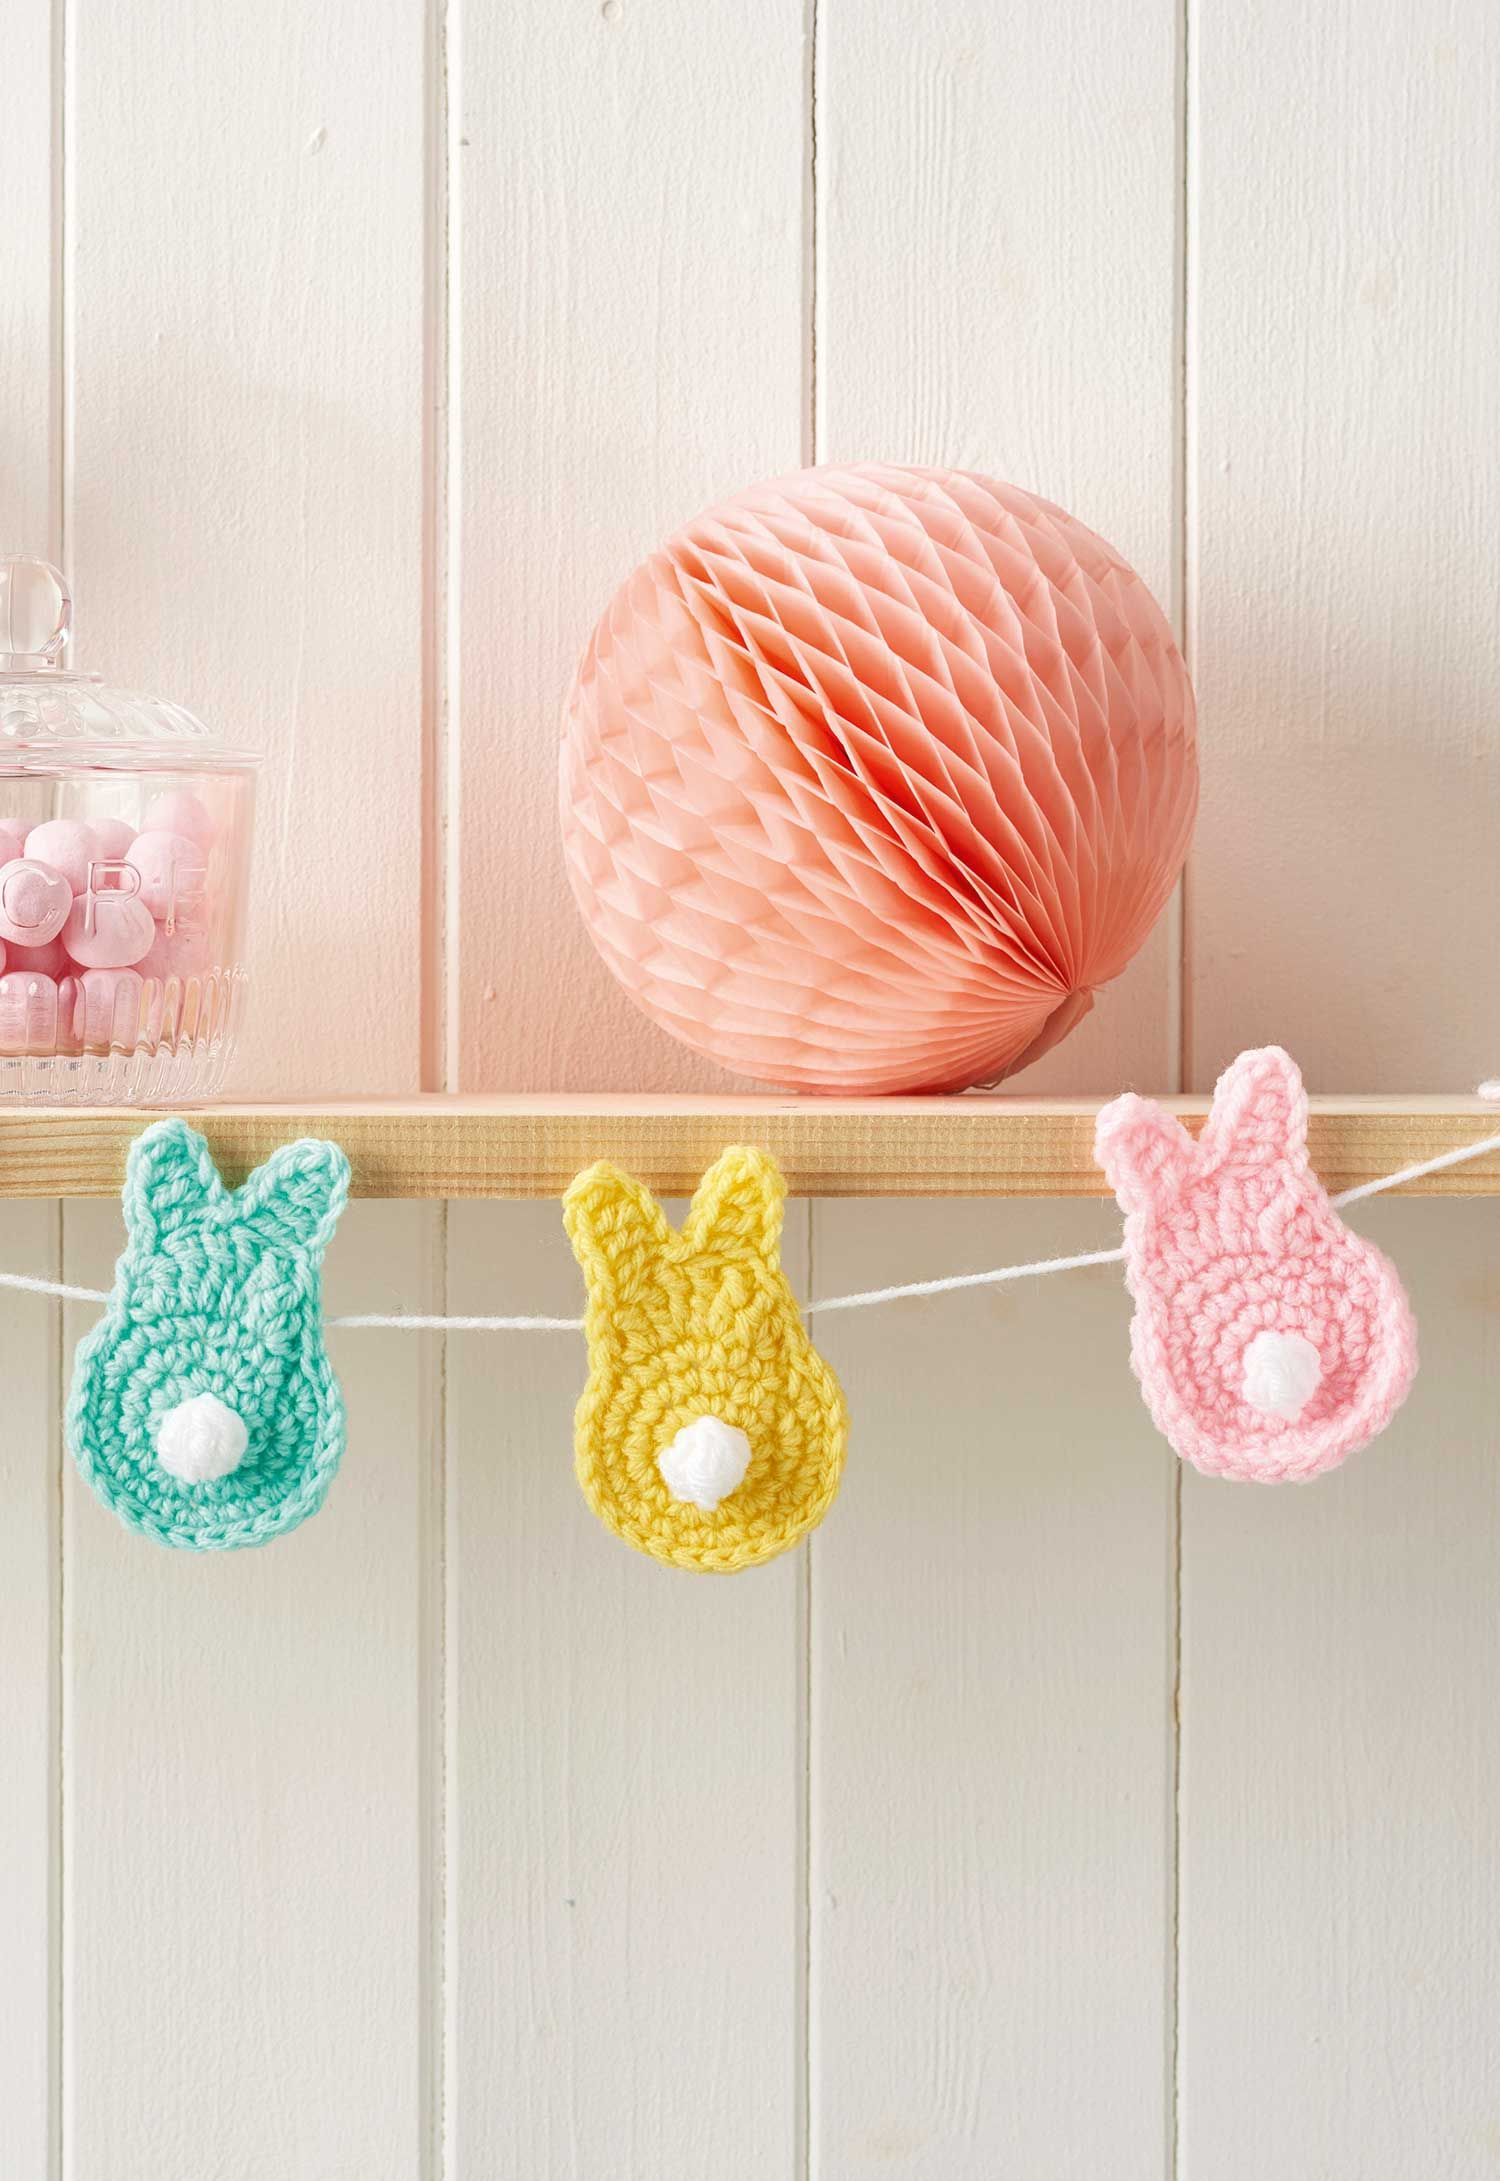 Easter crafts: Crochet bunny bunting - Full crochet pattern ...